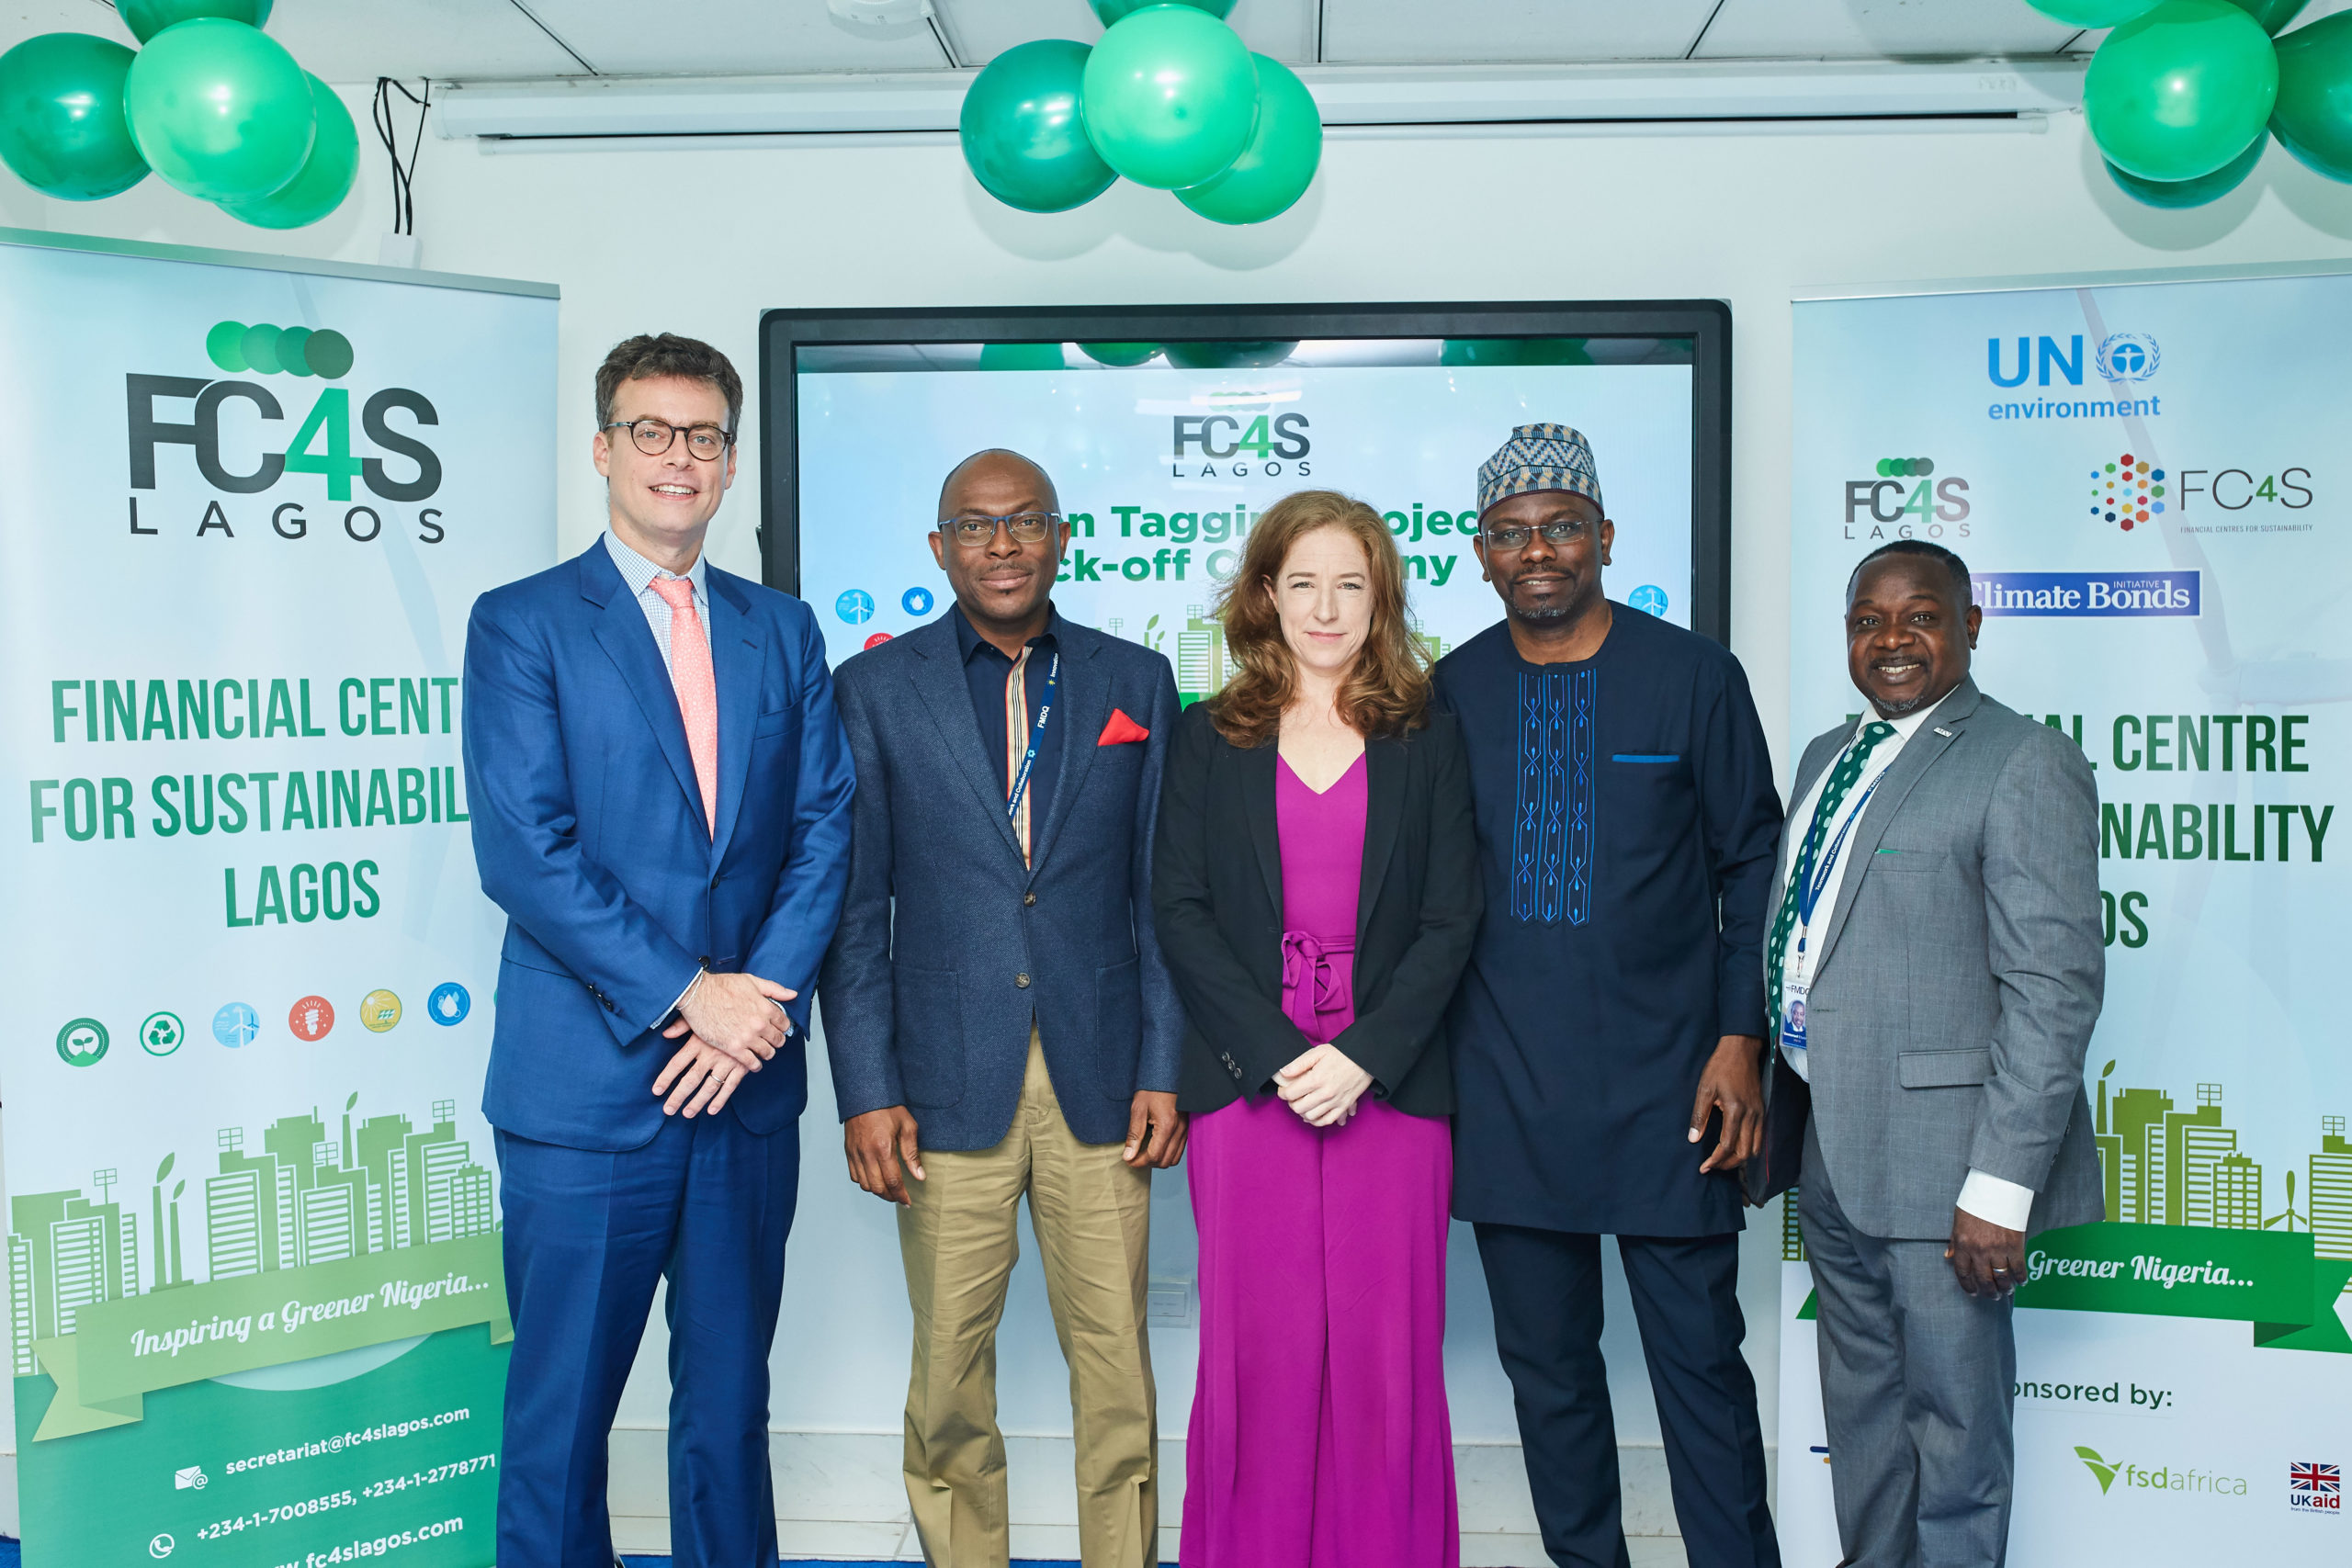 FMDQ, FC4S Lagos, UNEP, Others Kick-Off the Nigerian Green Tagging Project